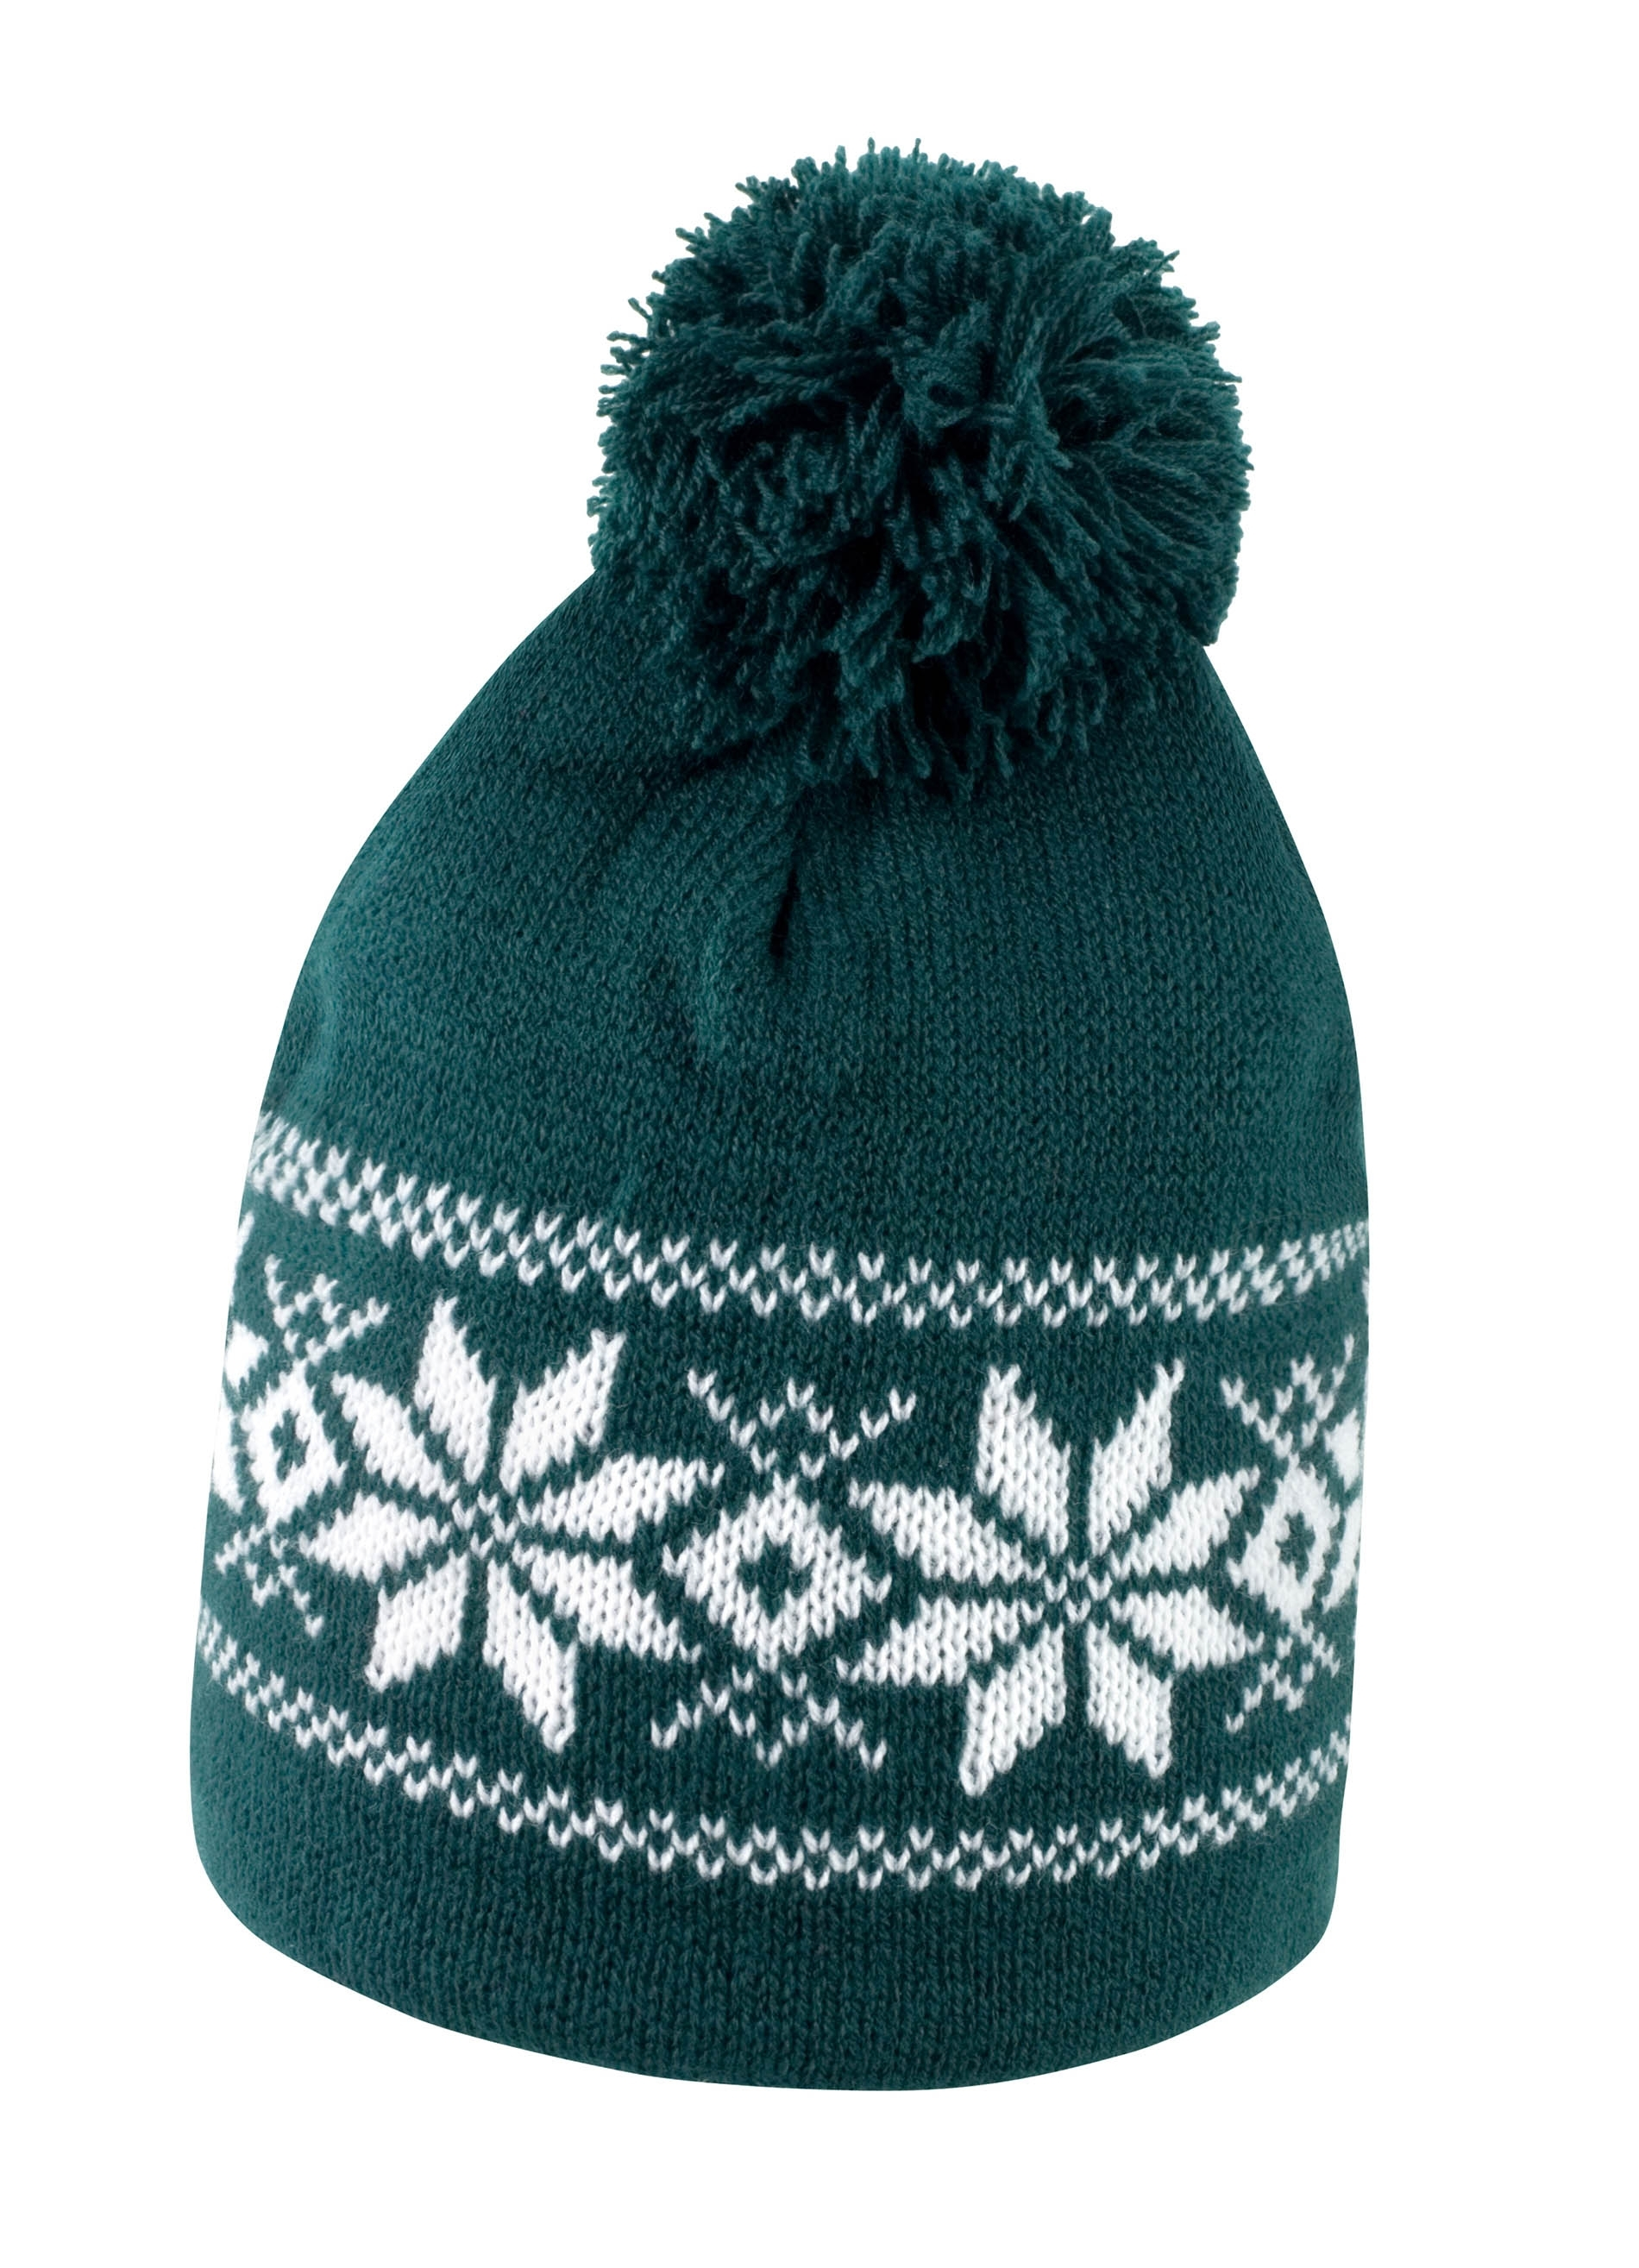 BONNET FAIR ISLES Artic Green / White Vert